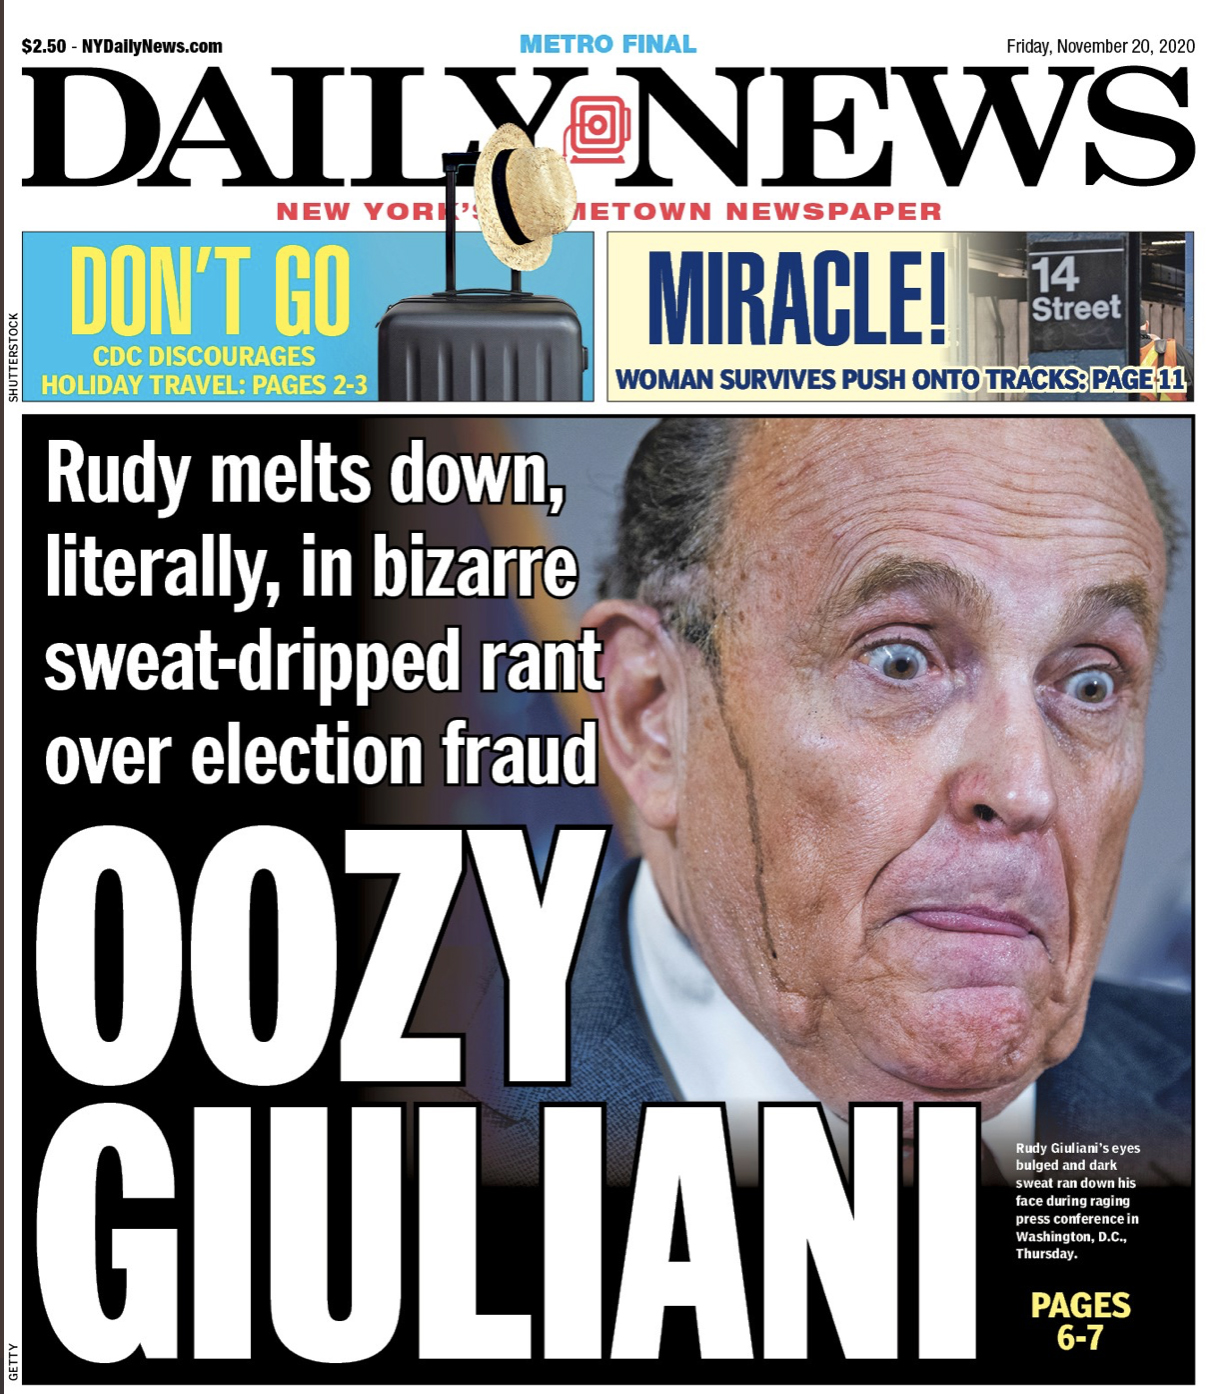 Mr. Astroglide® Lube - Oozy Giuliani